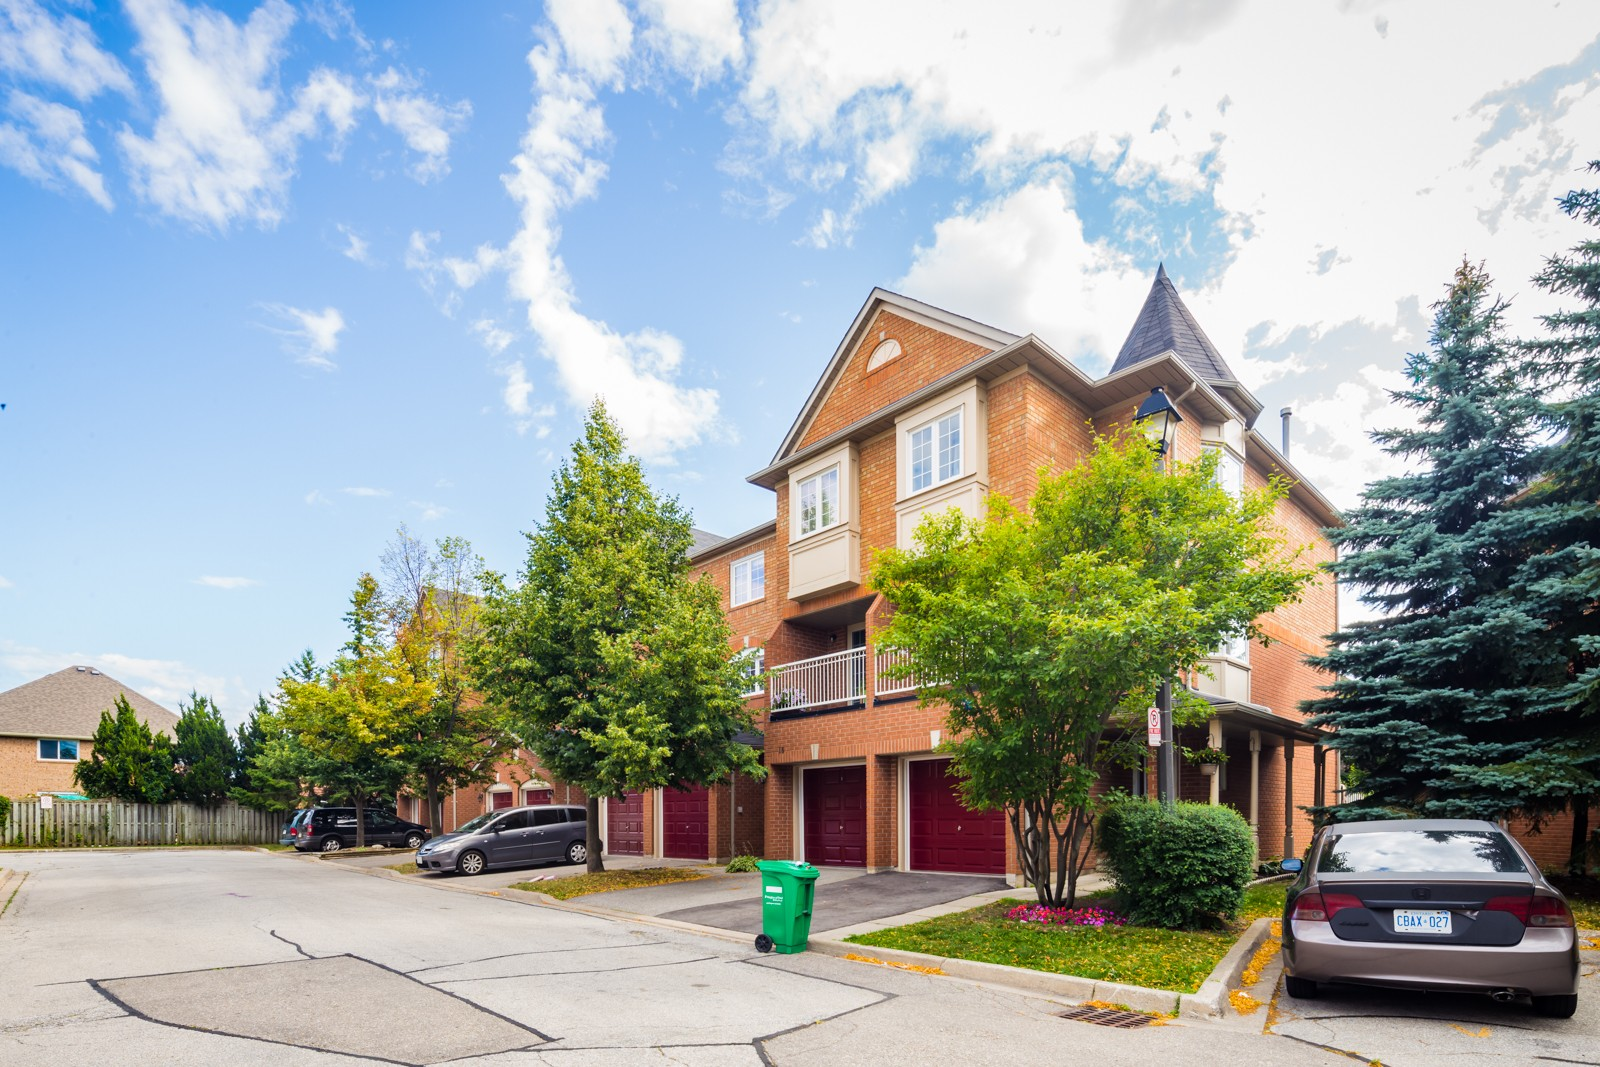 6950 Tenth Line West Townhouses at 6950 Tenth Line W, Mississauga 1